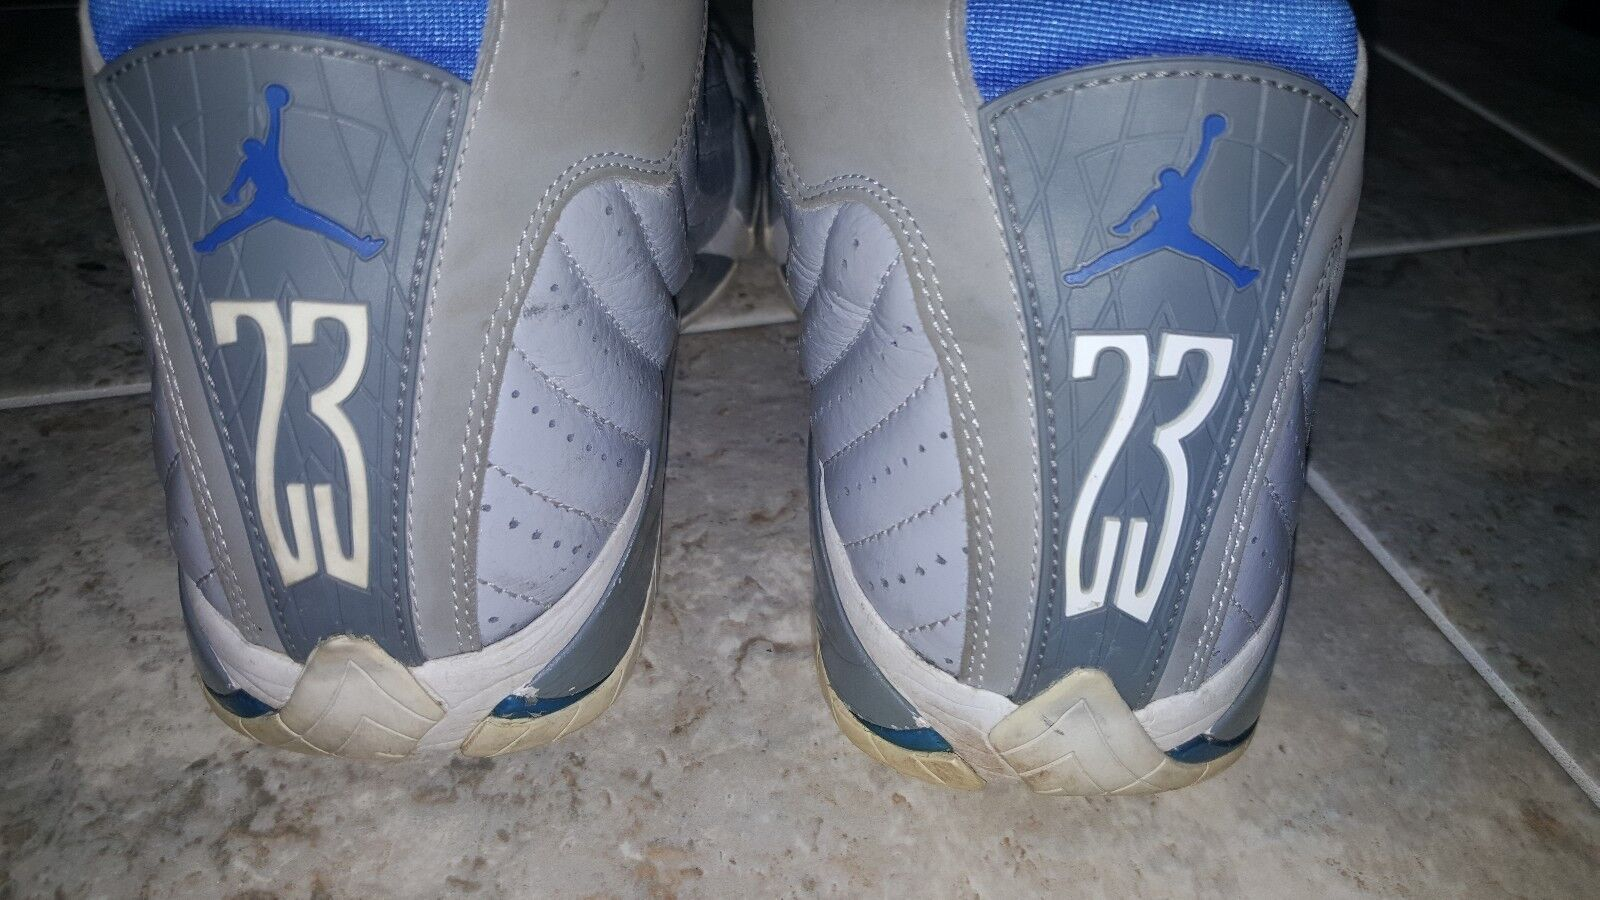 Nike Air Jordan 14 XIV Sport bluee Size Size Size 8.5 Wolf Grey 487471-004 Offers Accepted 402399